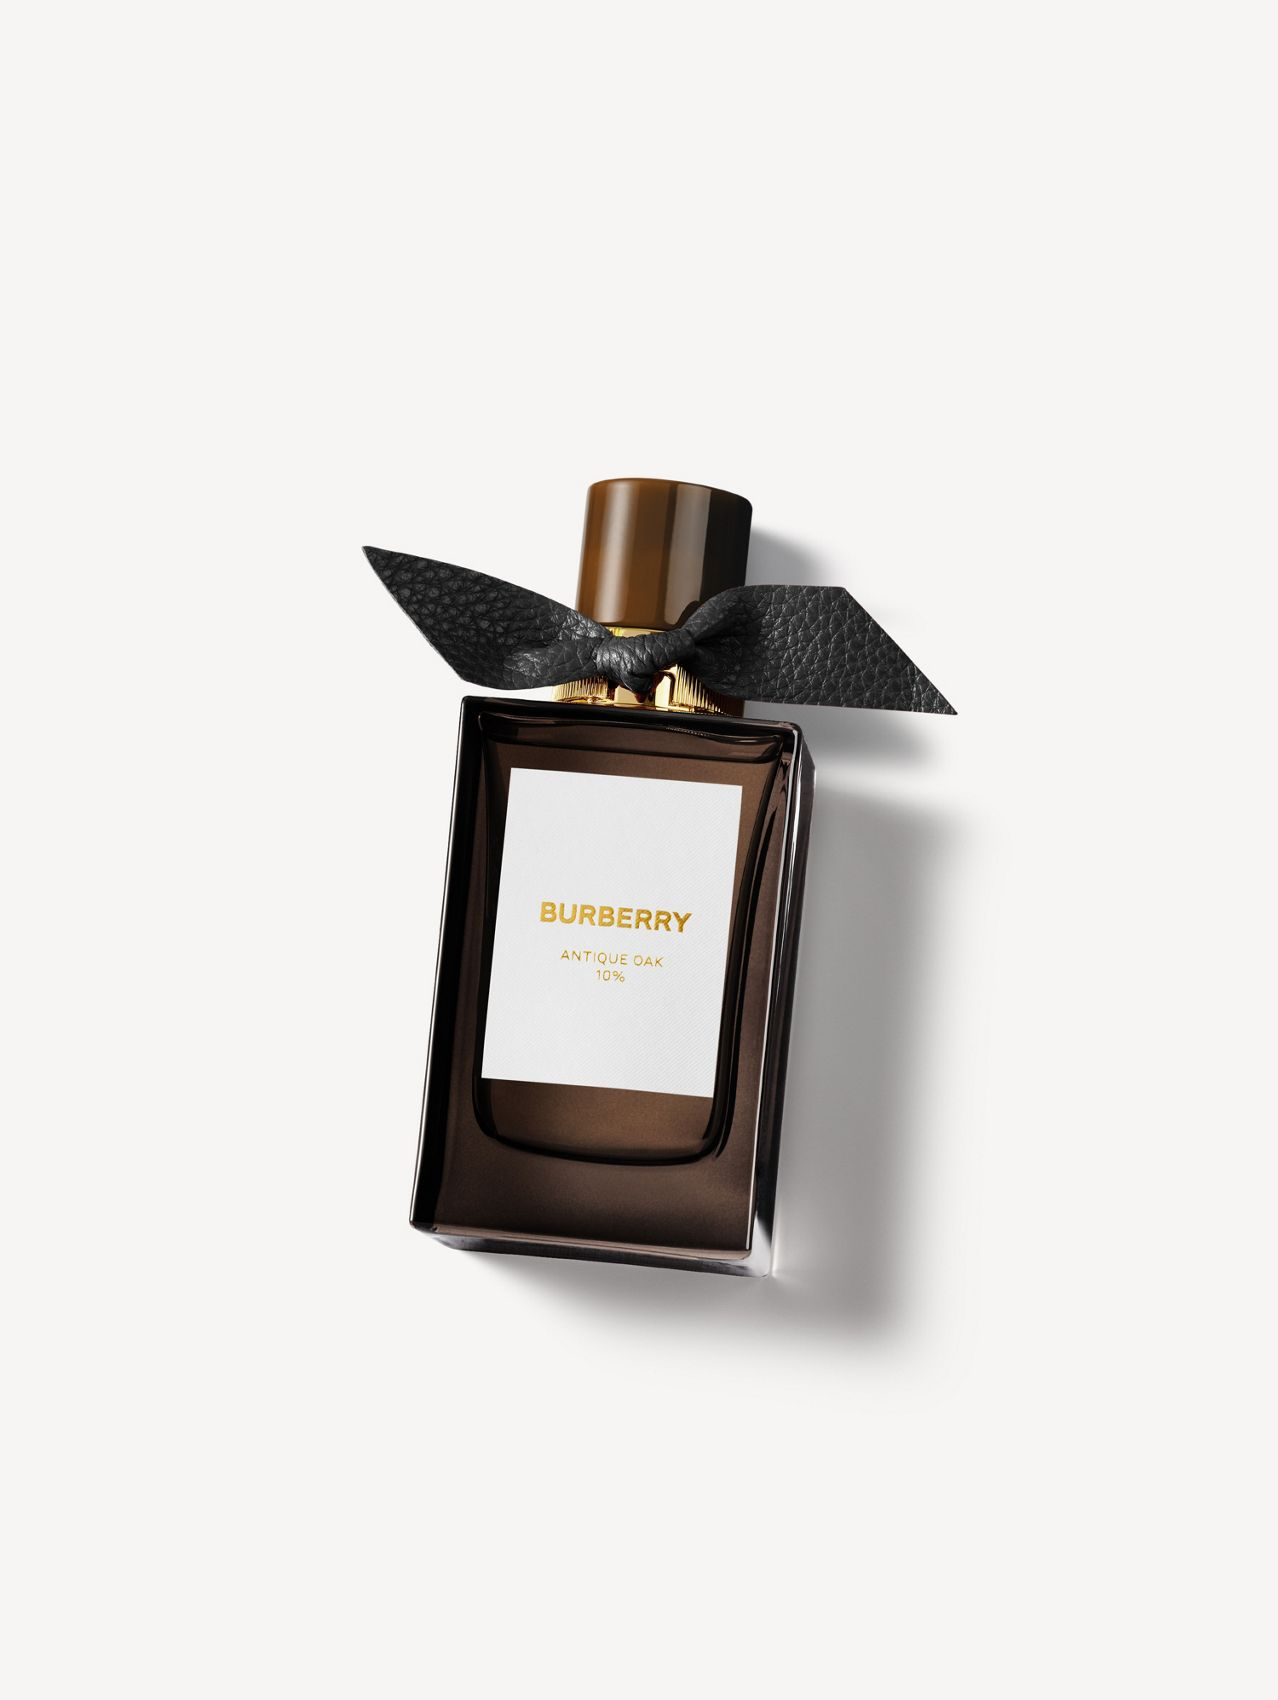 Burberry Signatures Antique Oak Eau de Parfum 100ml